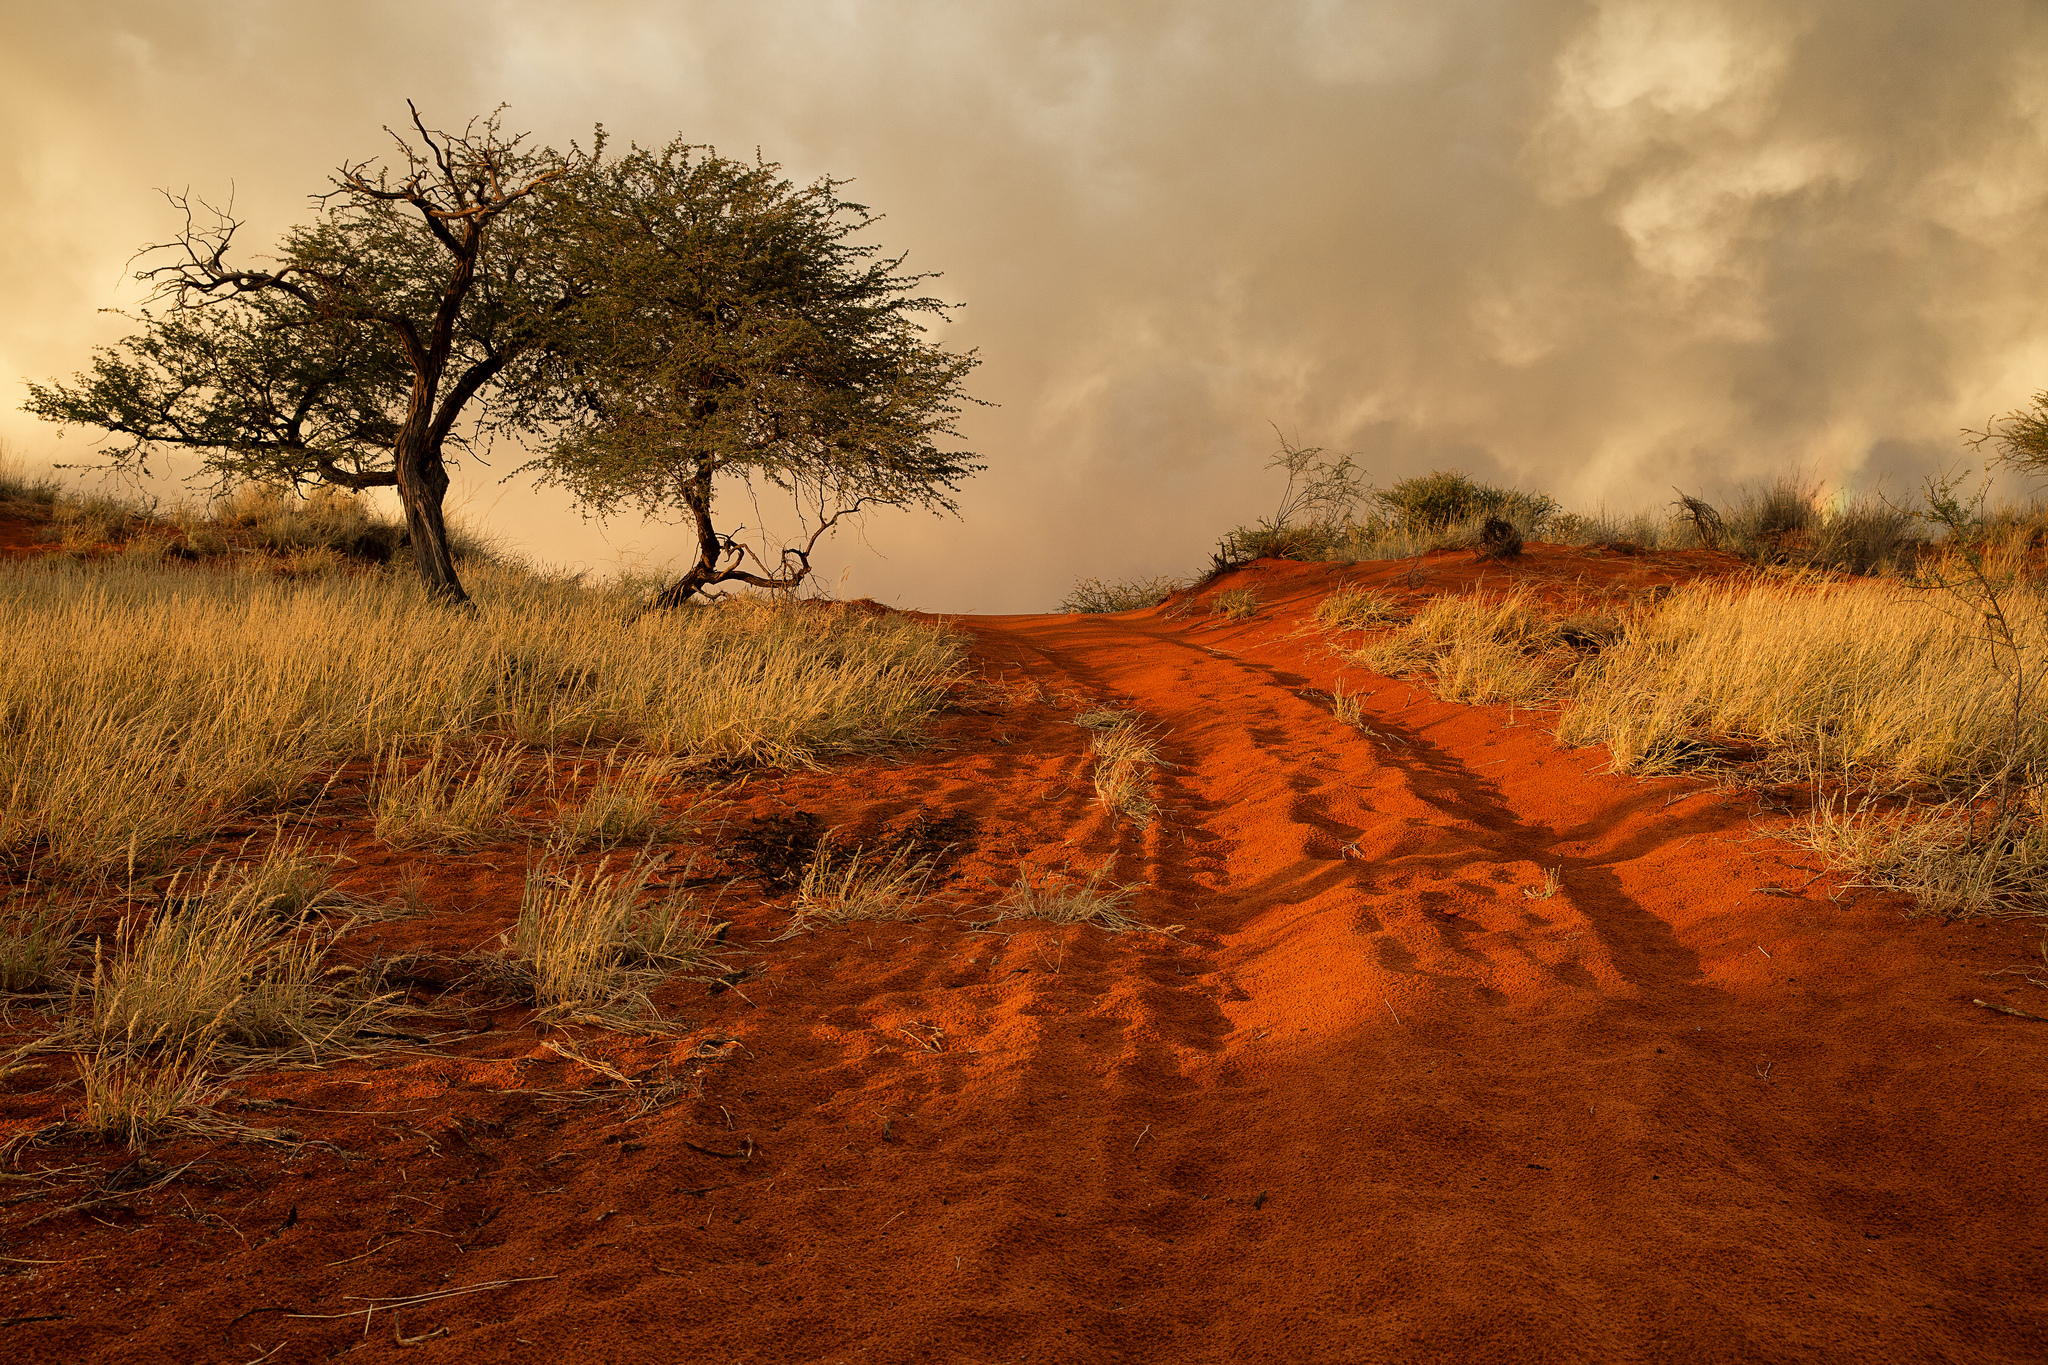 Dirt Road In The African Savanna Full Hd Wallpaper And HD Wallpapers Download Free Images Wallpaper [1000image.com]